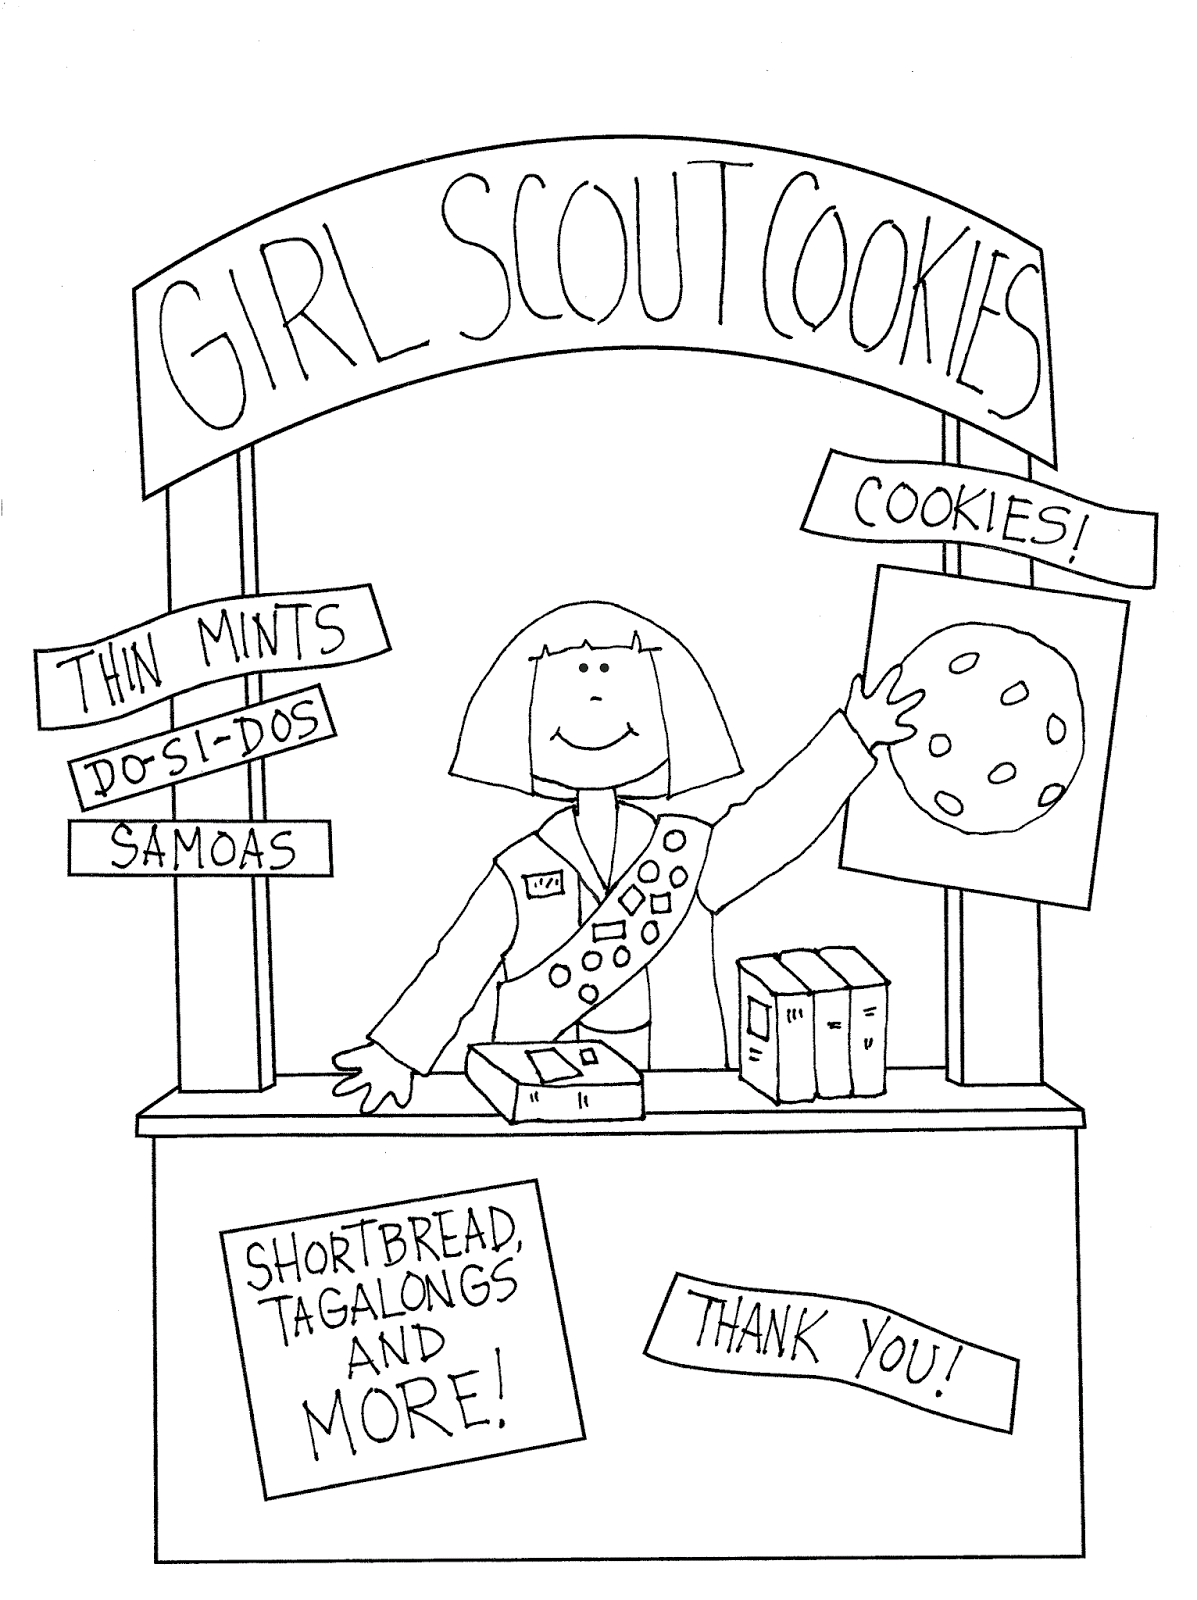 girl scout cookie coloring pages ltccp5 girl scout cookie sales daisy girl scouts girl scout cookie coloring pages girl